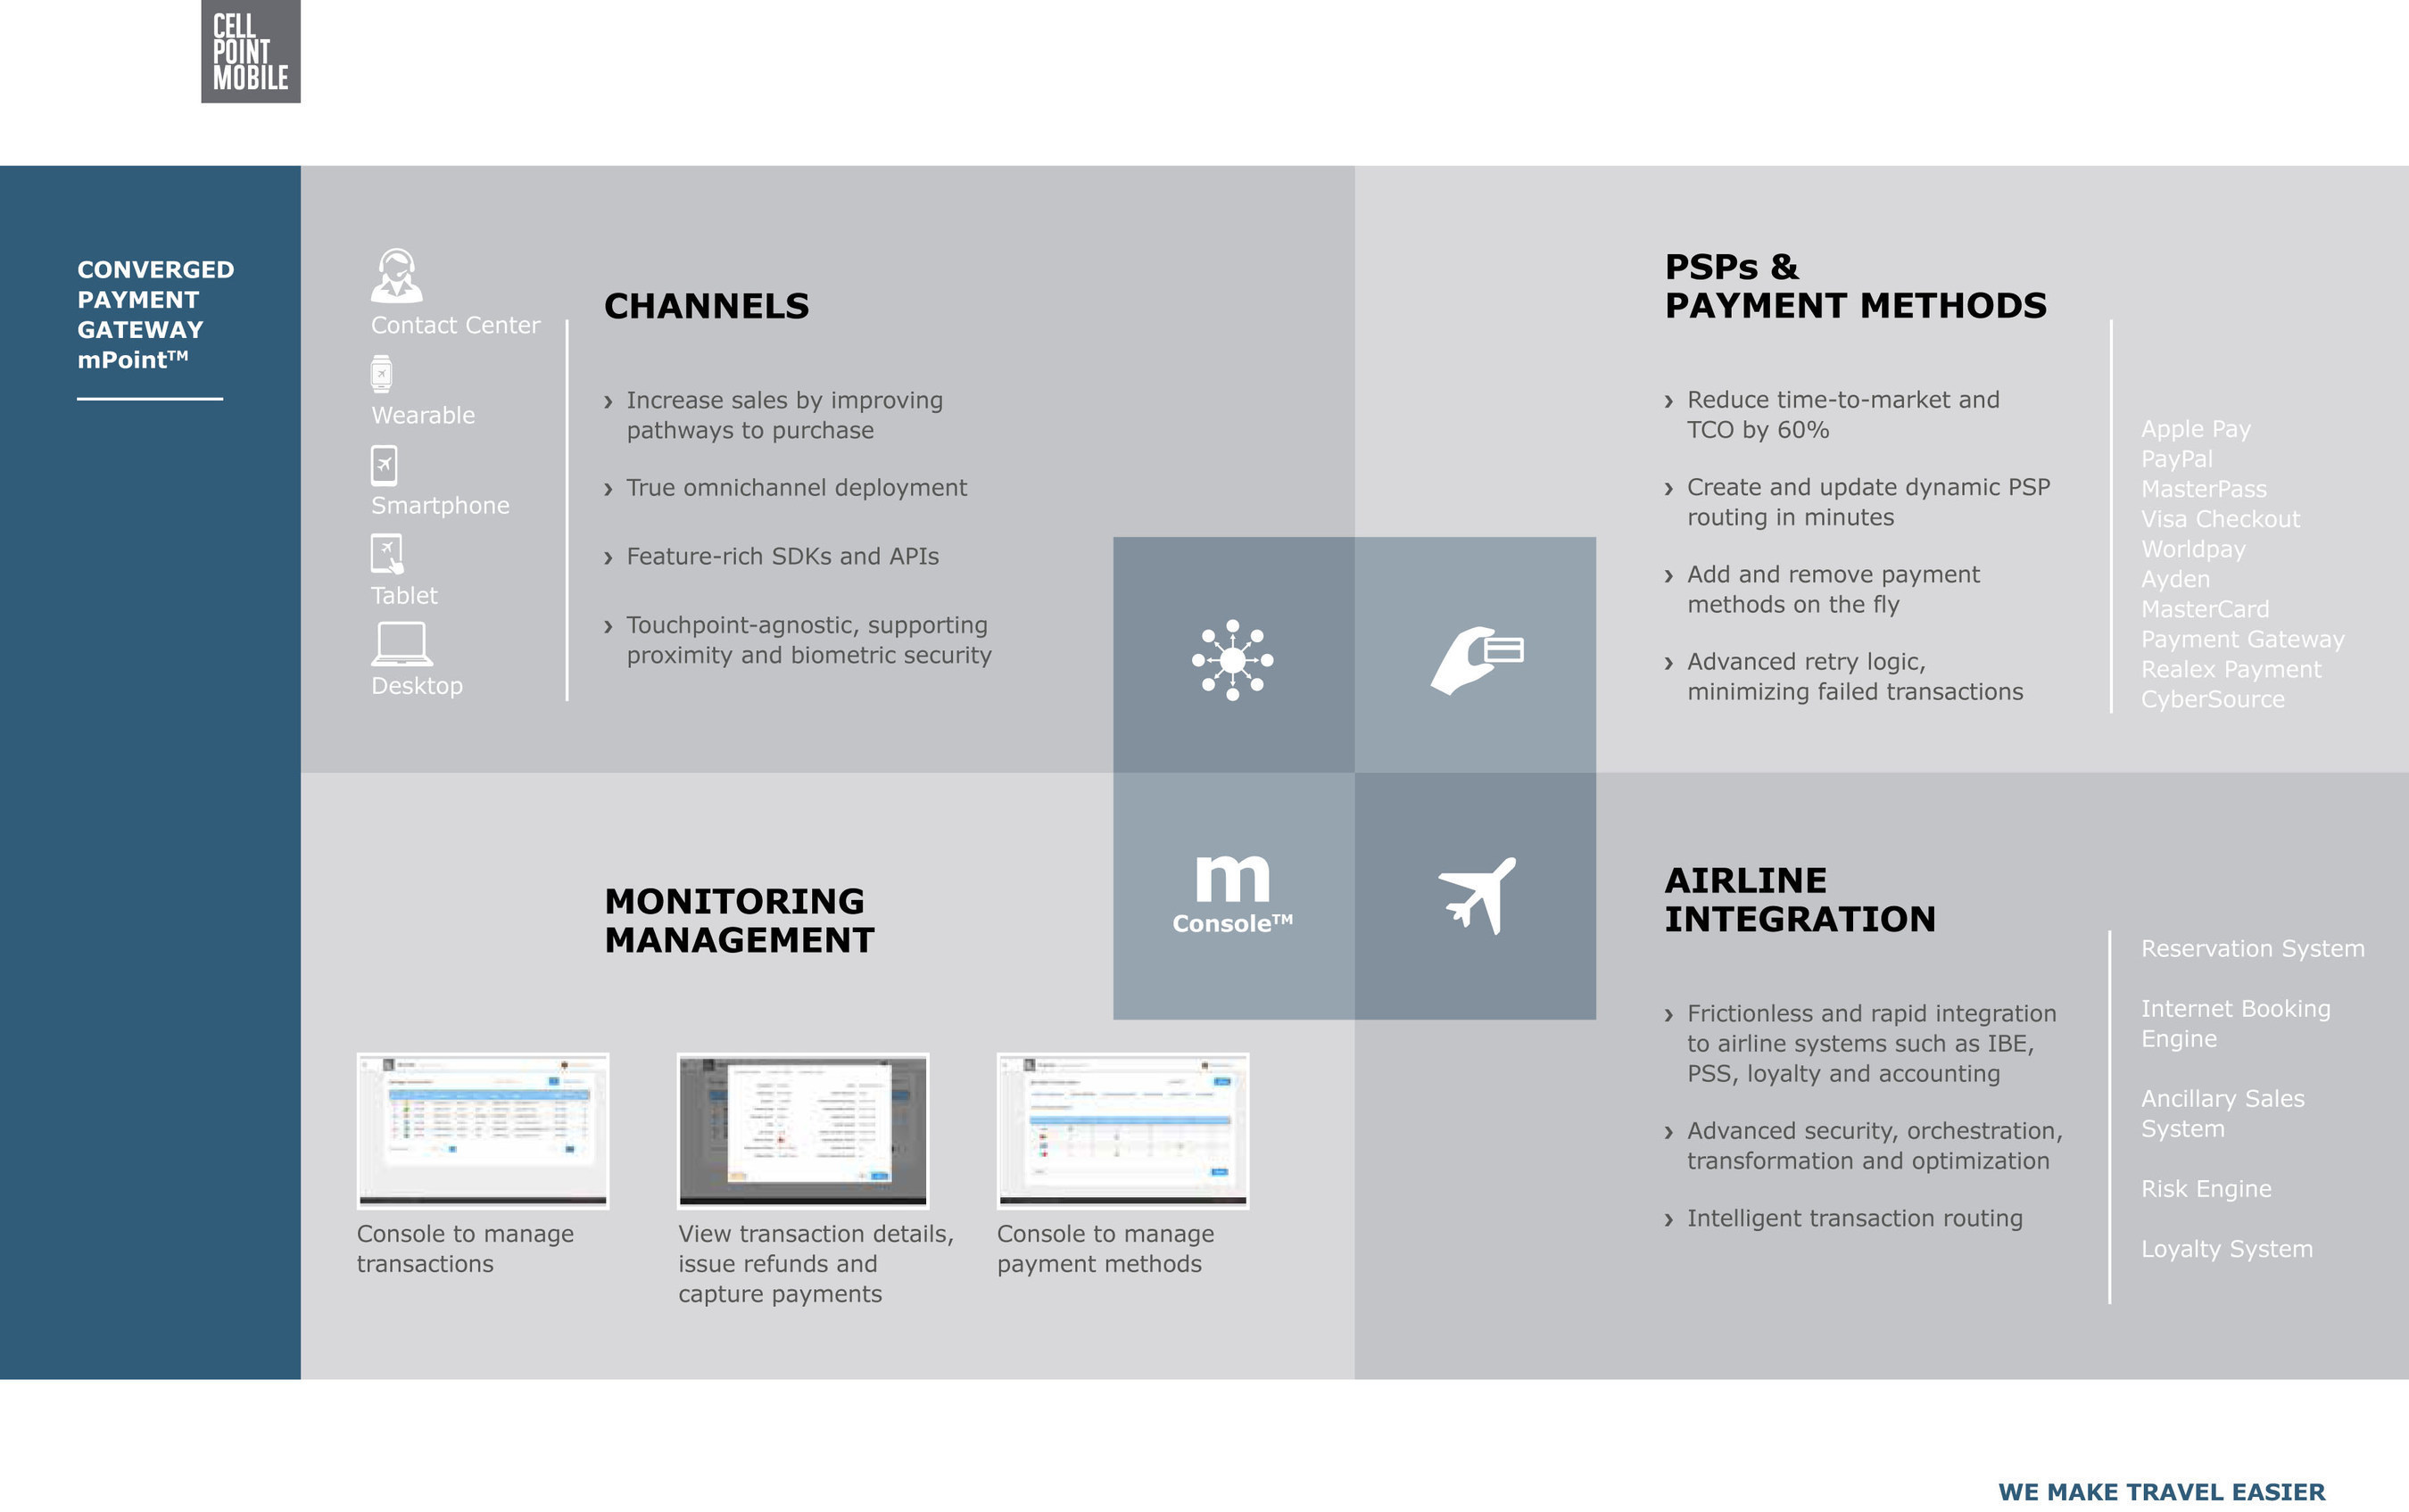 CellPoint Mobile Rolls Out New Converged Payment Gateway For the Global Airline Industry